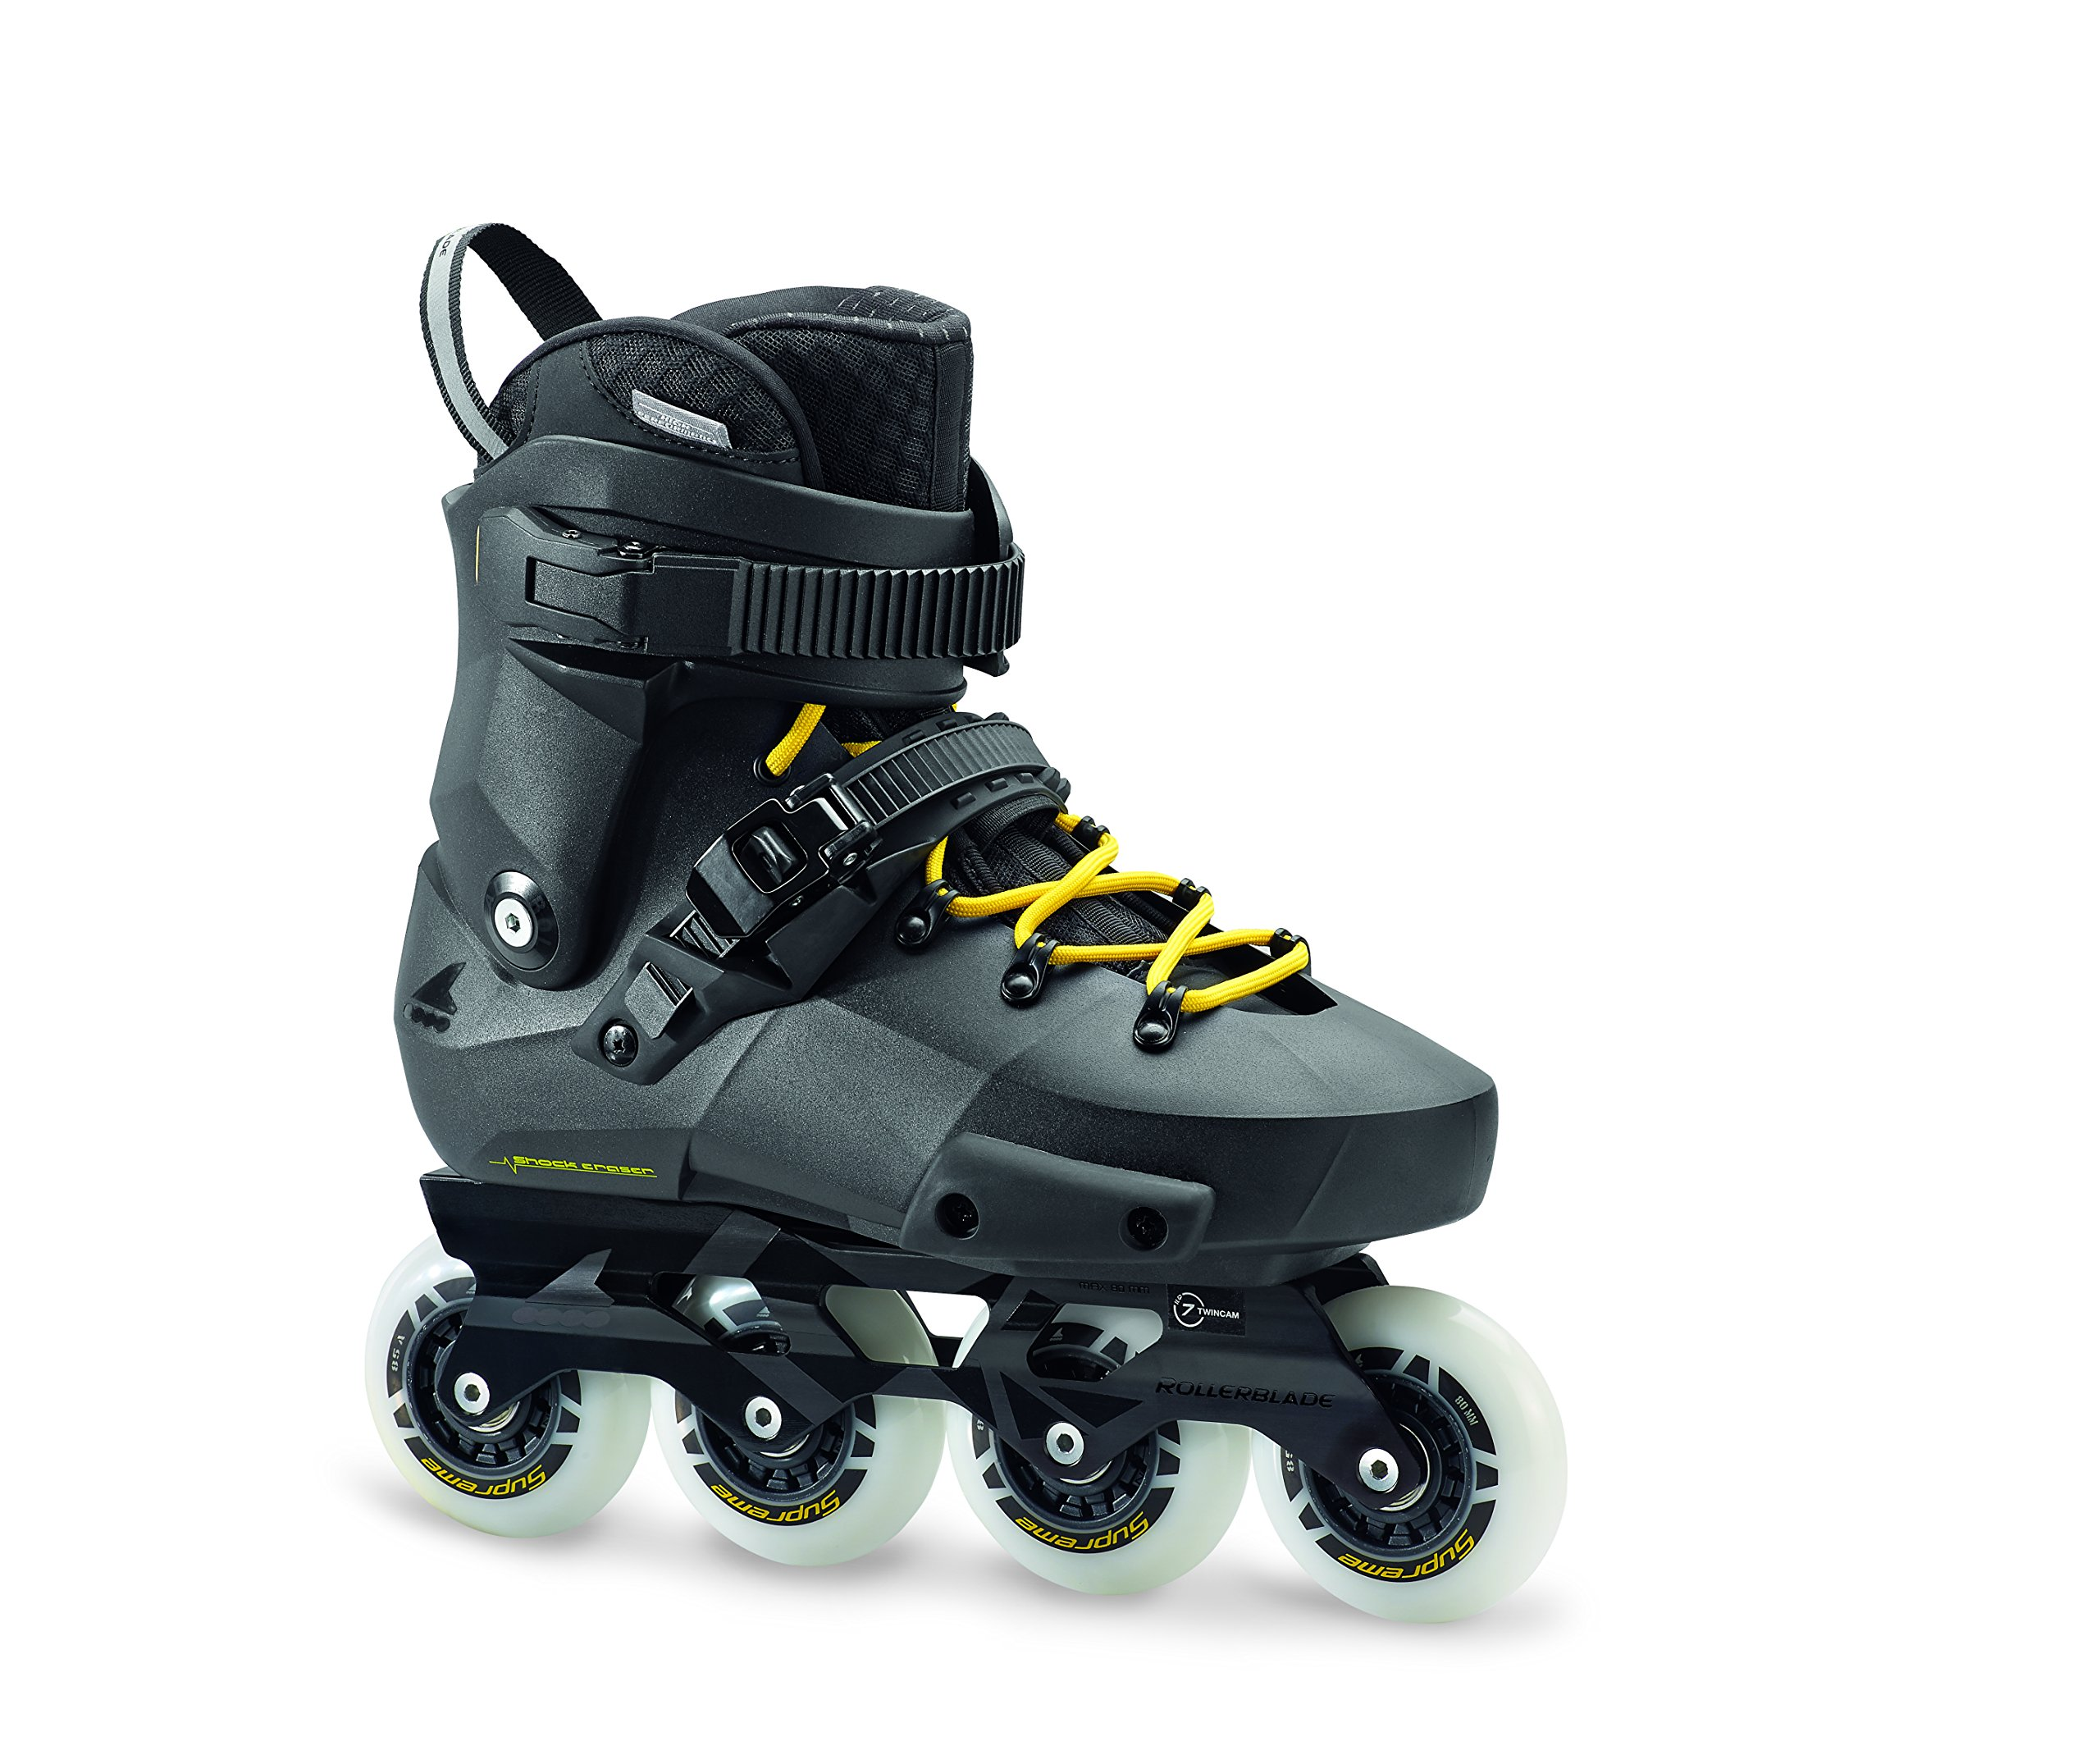 Rollerblade Men's Twister Edge Fitness Inline Skate, Black/Yellow, Size 12.5 by Rollerblade